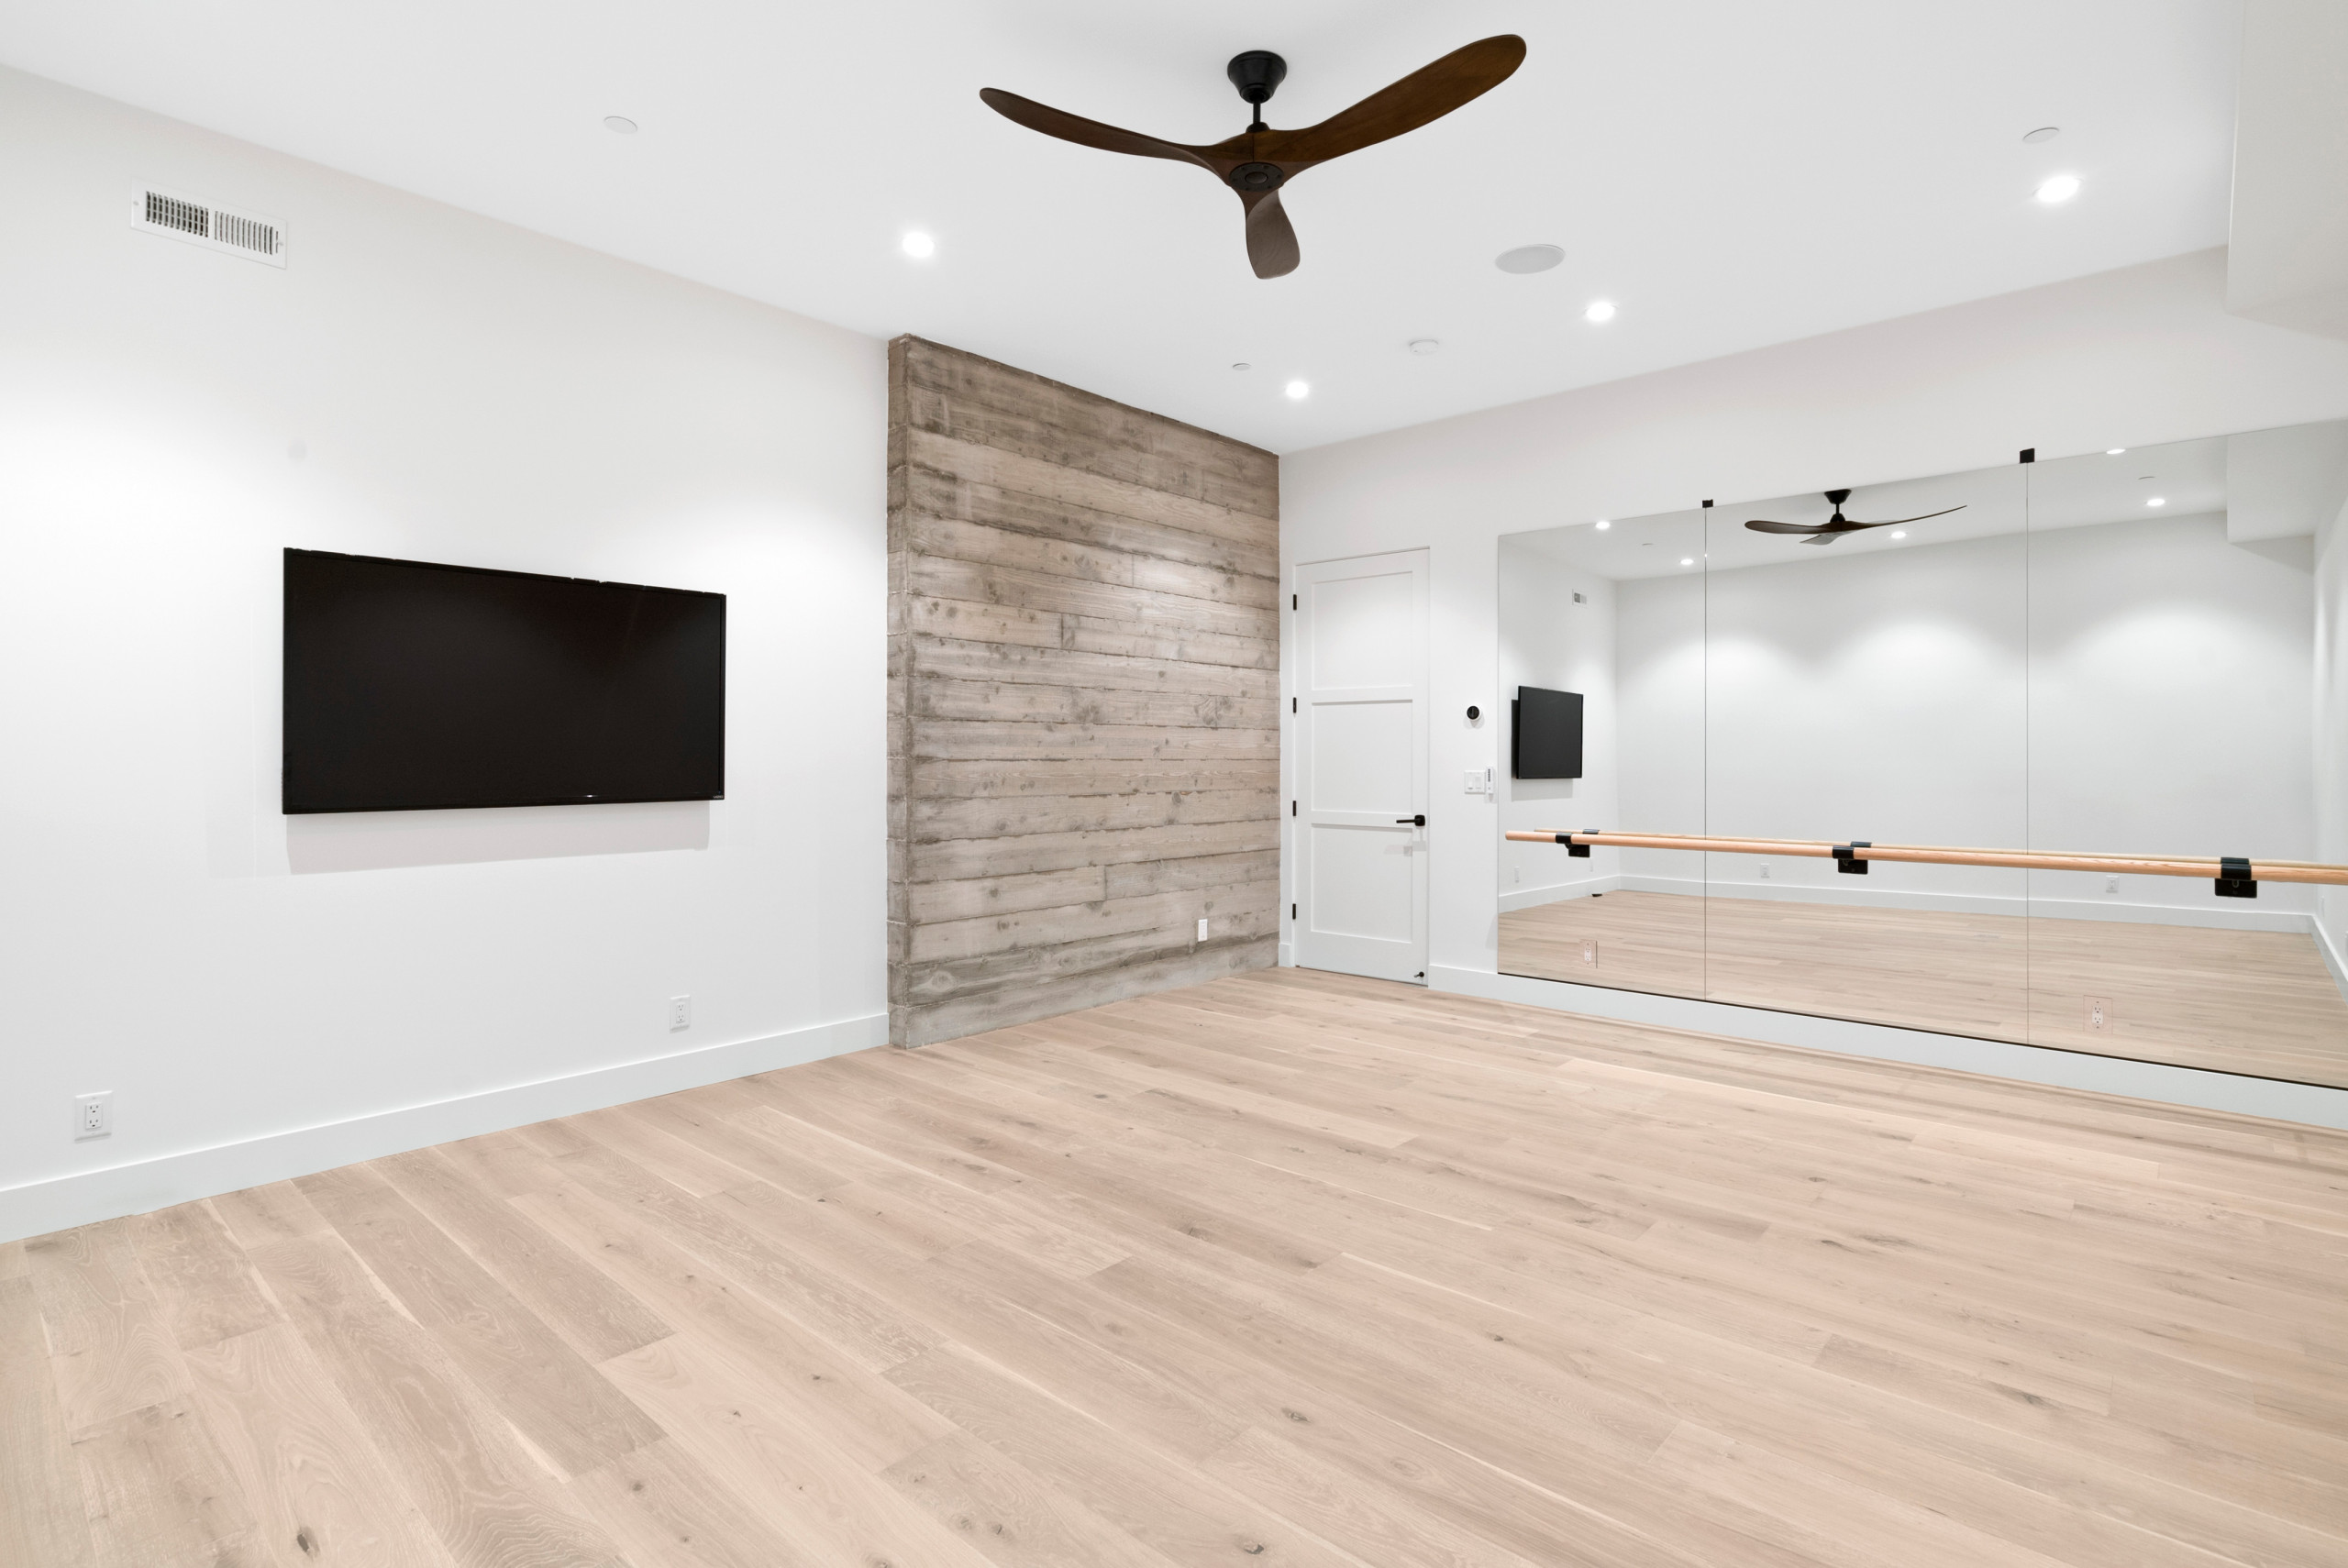 18 Beautiful Modern Home Yoga Studio Pictures Ideas October 2020 Houzz